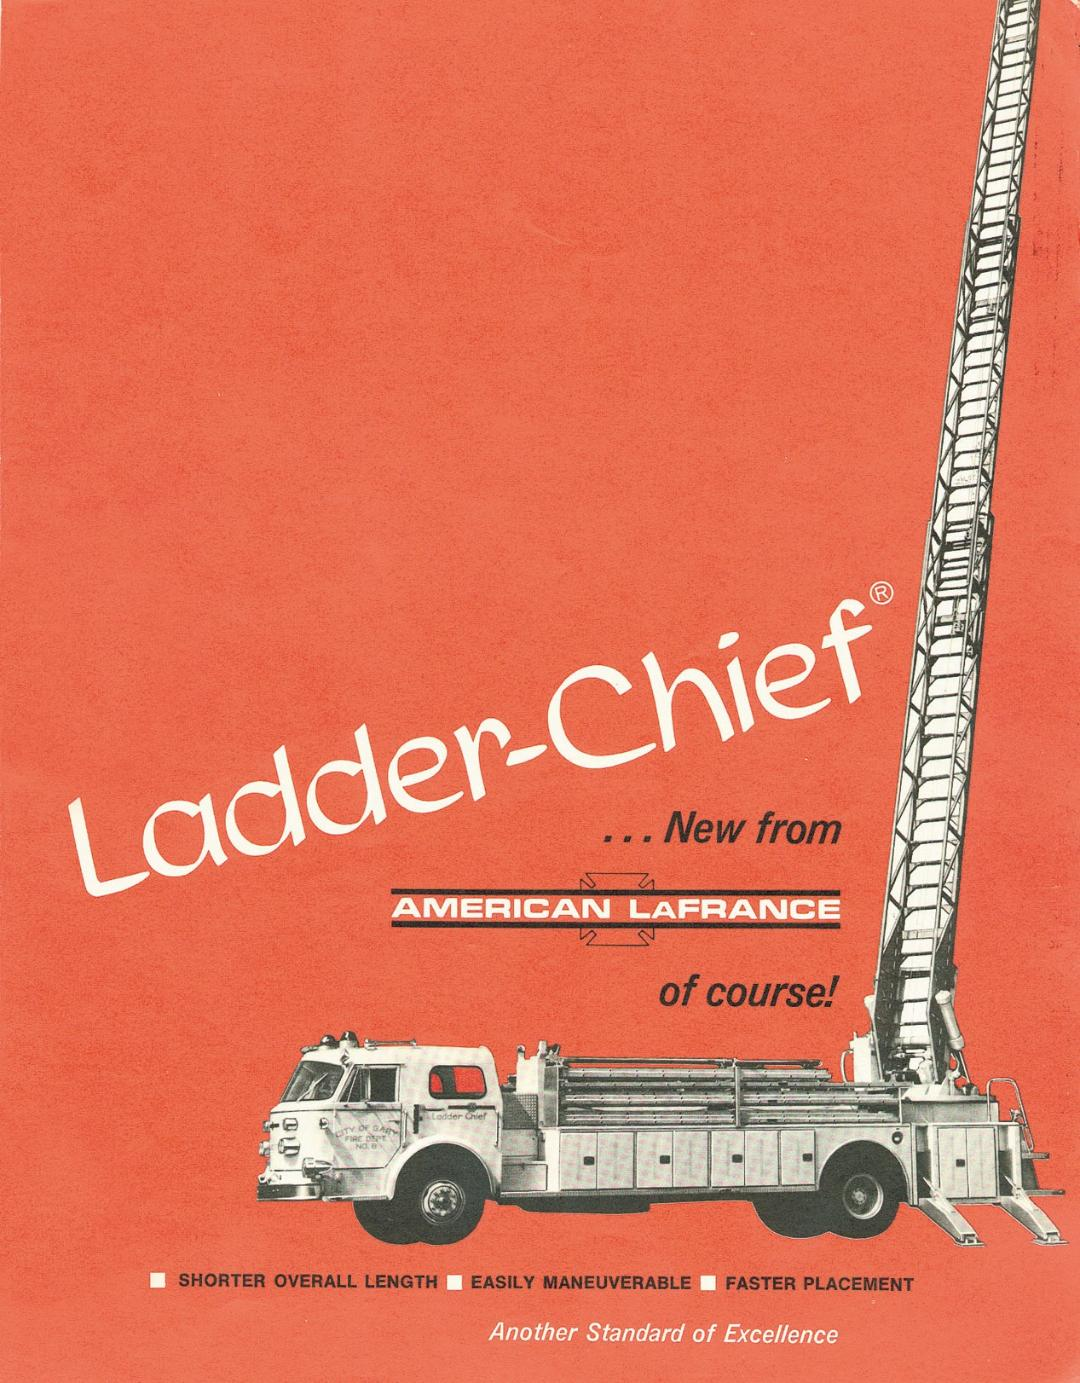 American LaFrance Ladder Chief brochure cover